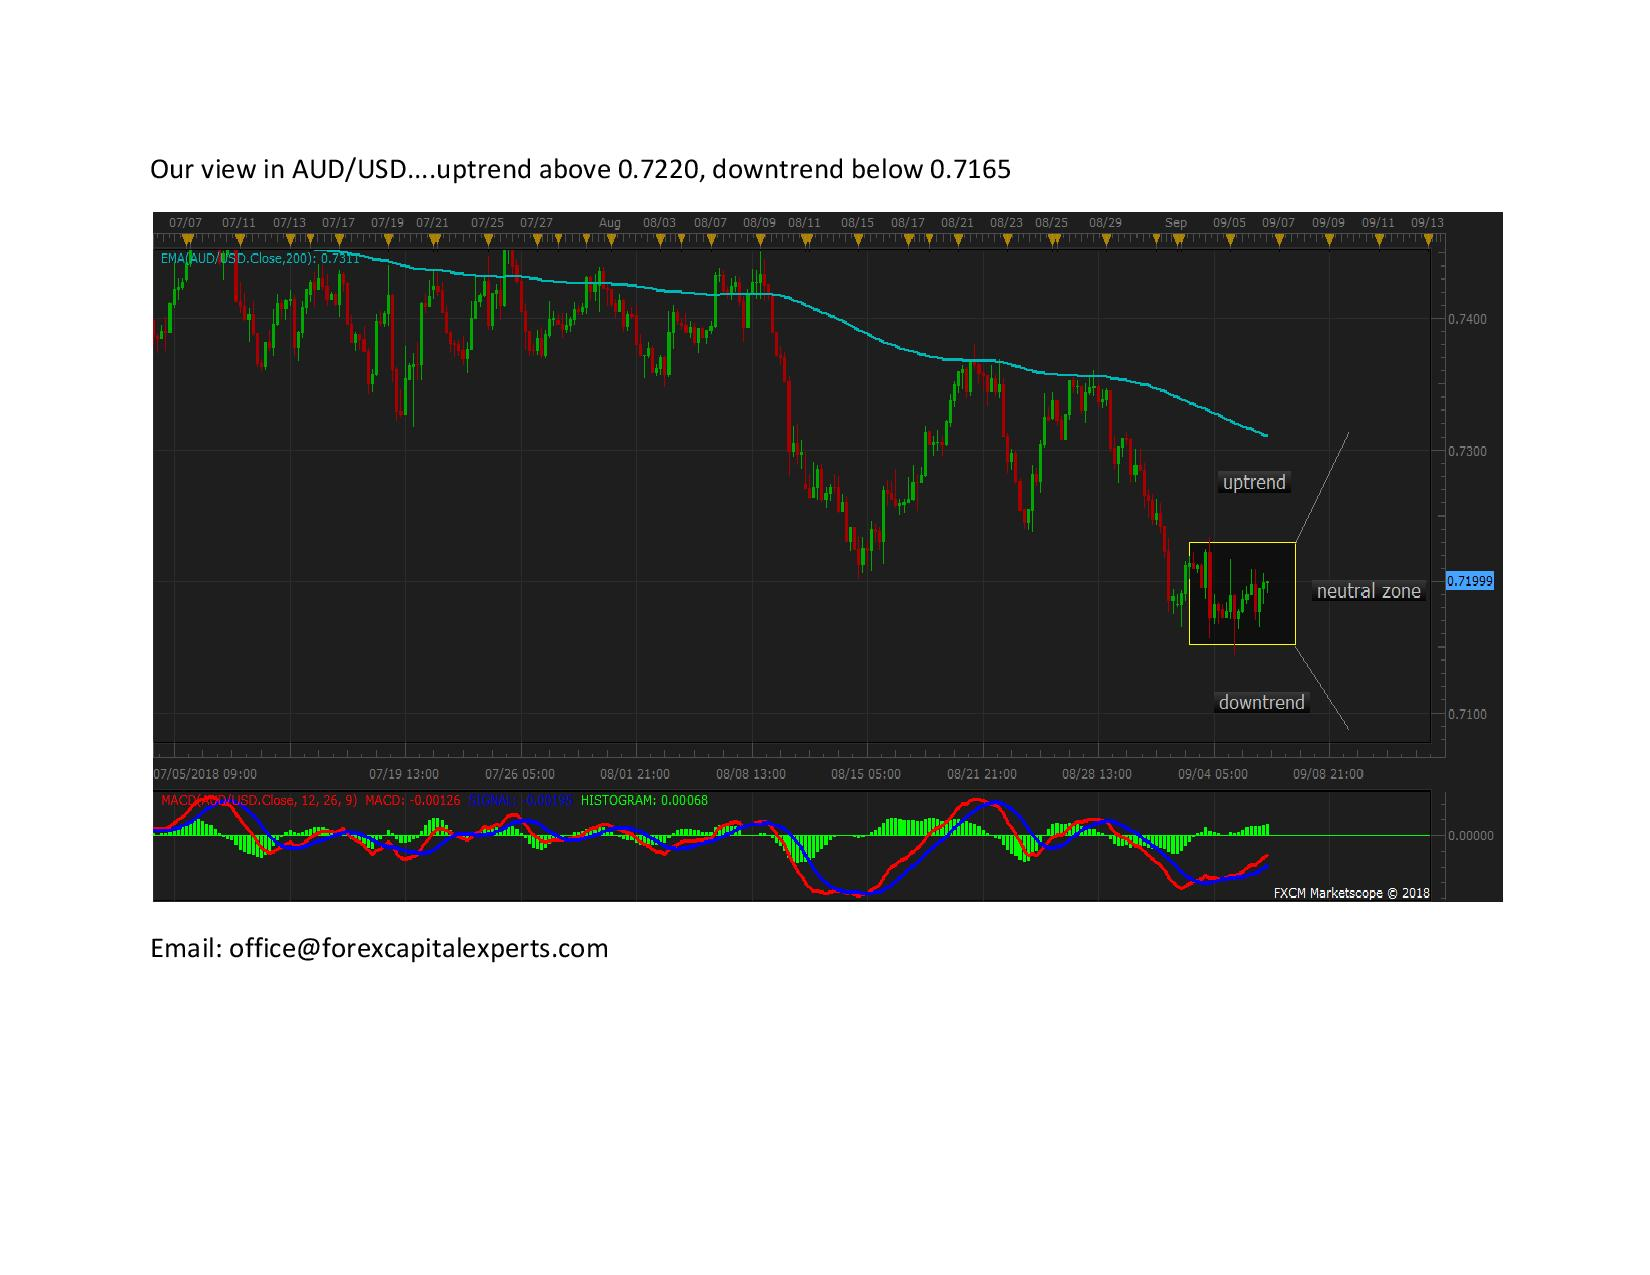 Our view in AUDUSD page 0011